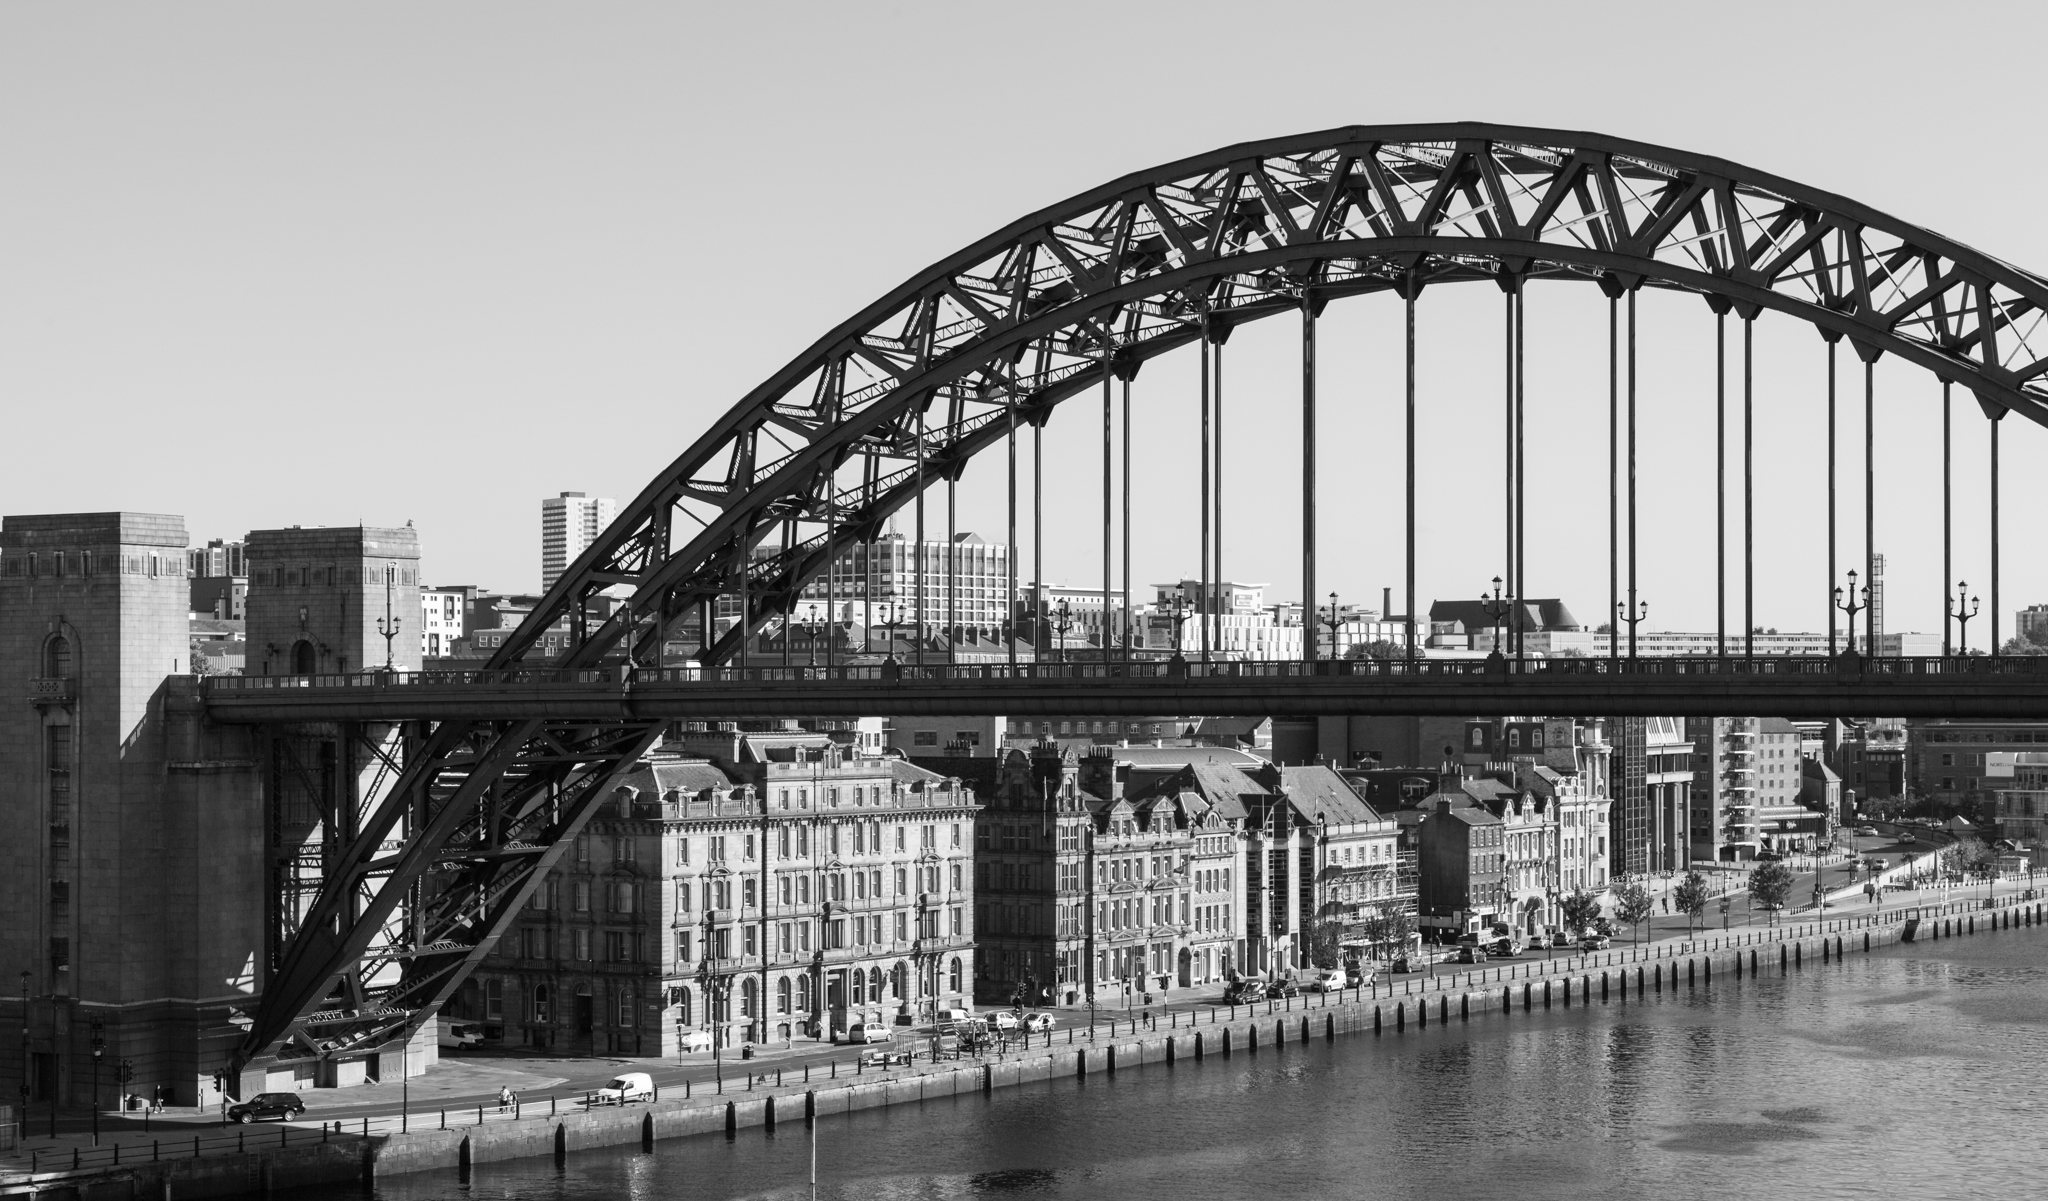 The Tyne bridge crosses from Gateshead into Newcastle on Tyne, spanning the mighty Tyne river and dwarfing the buildings below it on the quayside.